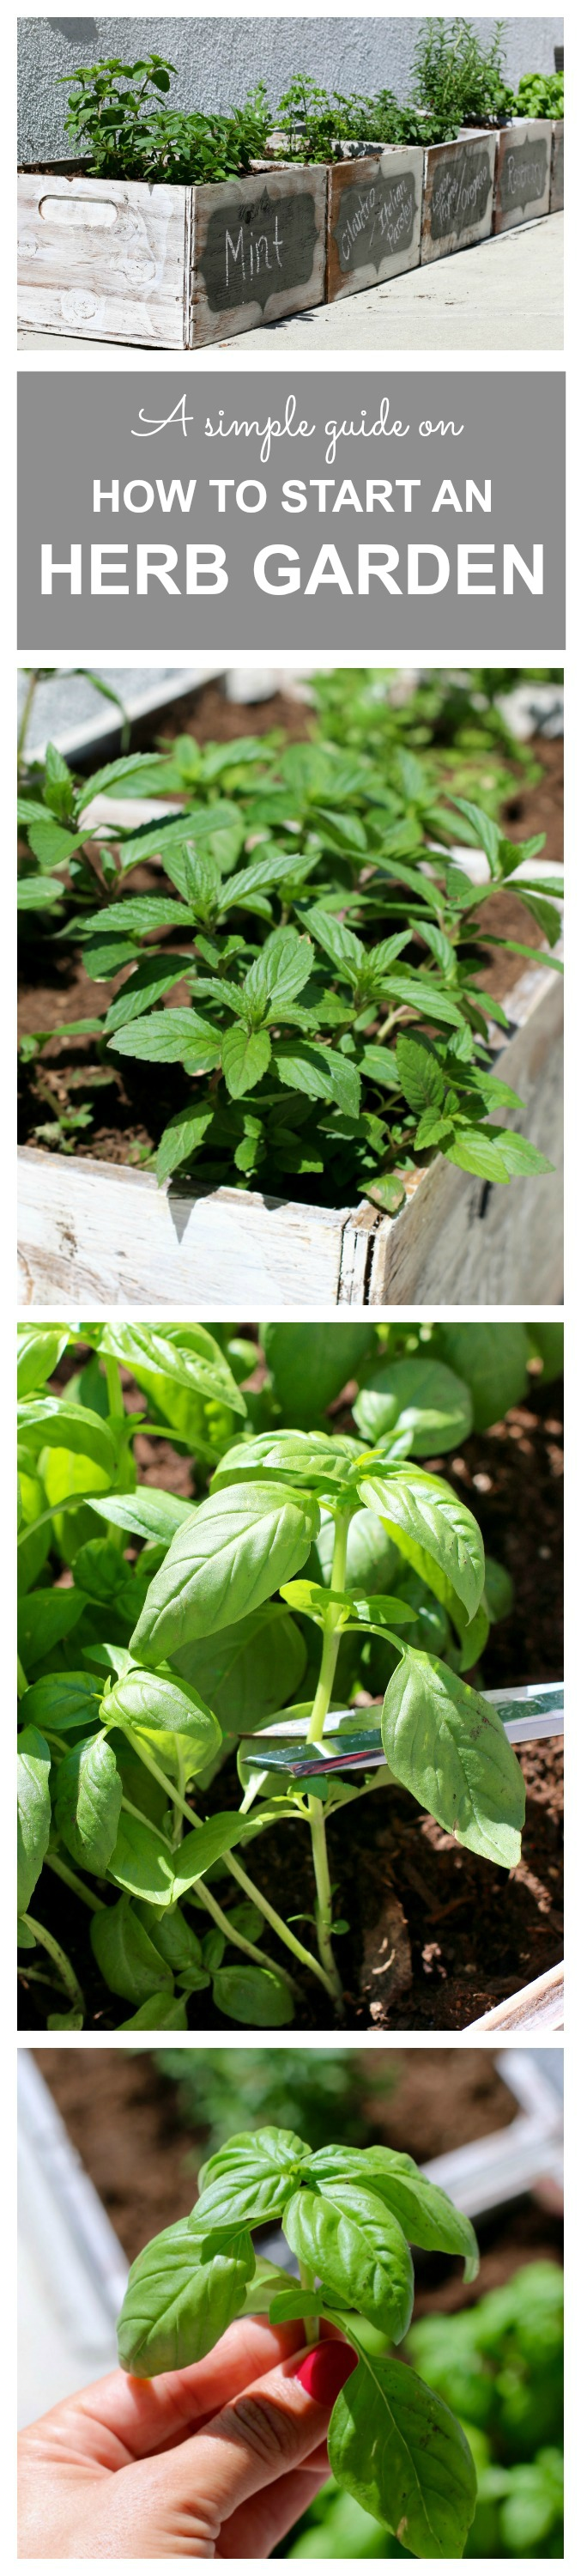 How to start an herb garden - a quick, simple guide.